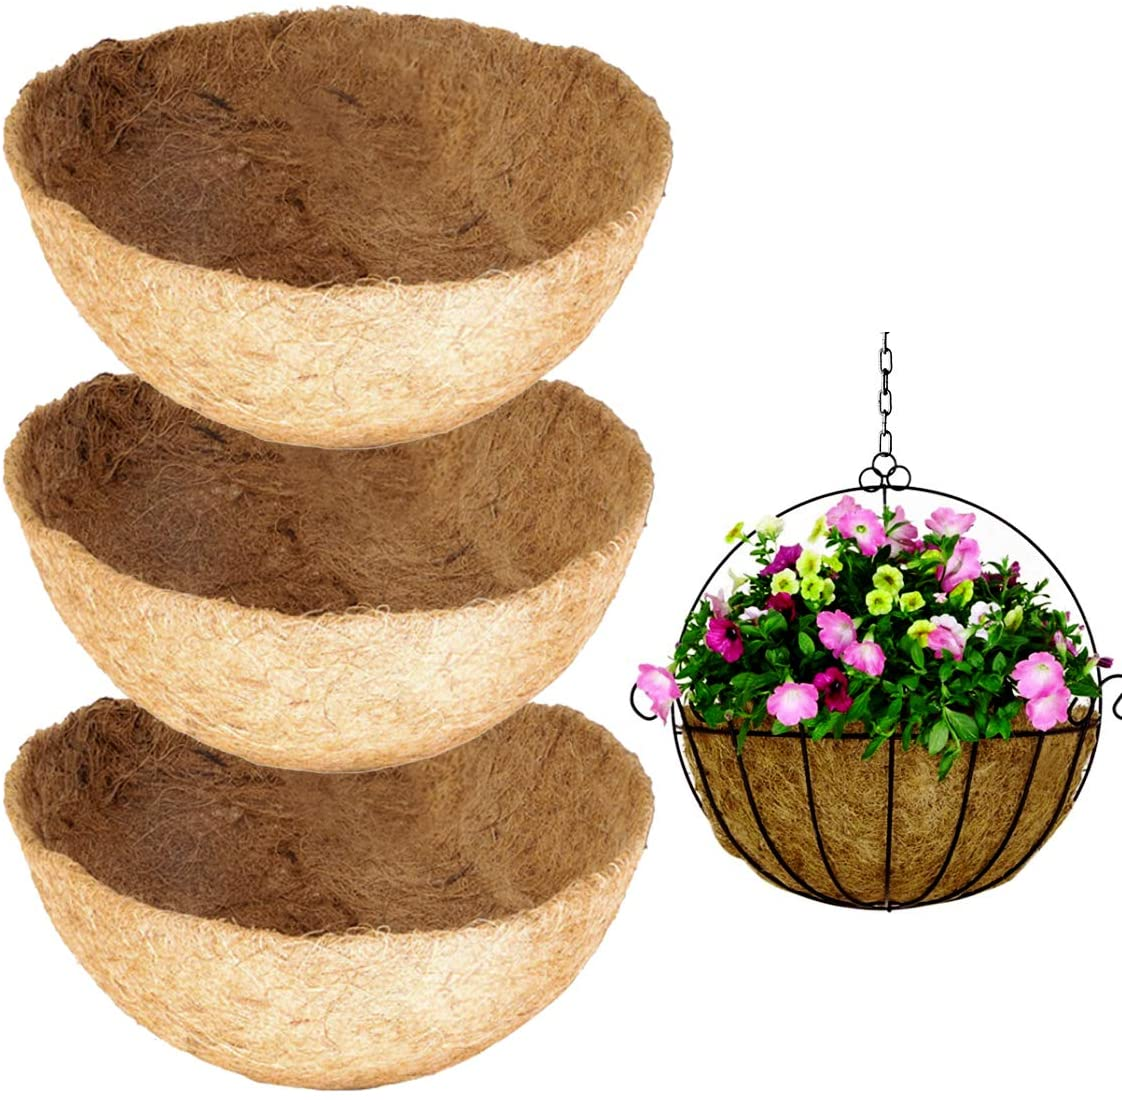 Owevvin 3 Pack Round Replacement Coco Liner, 10 Inches Coconut Fiber Plant Basket Liner for Hanging Basket, Garden Planter Flower Pot (12 Inches)